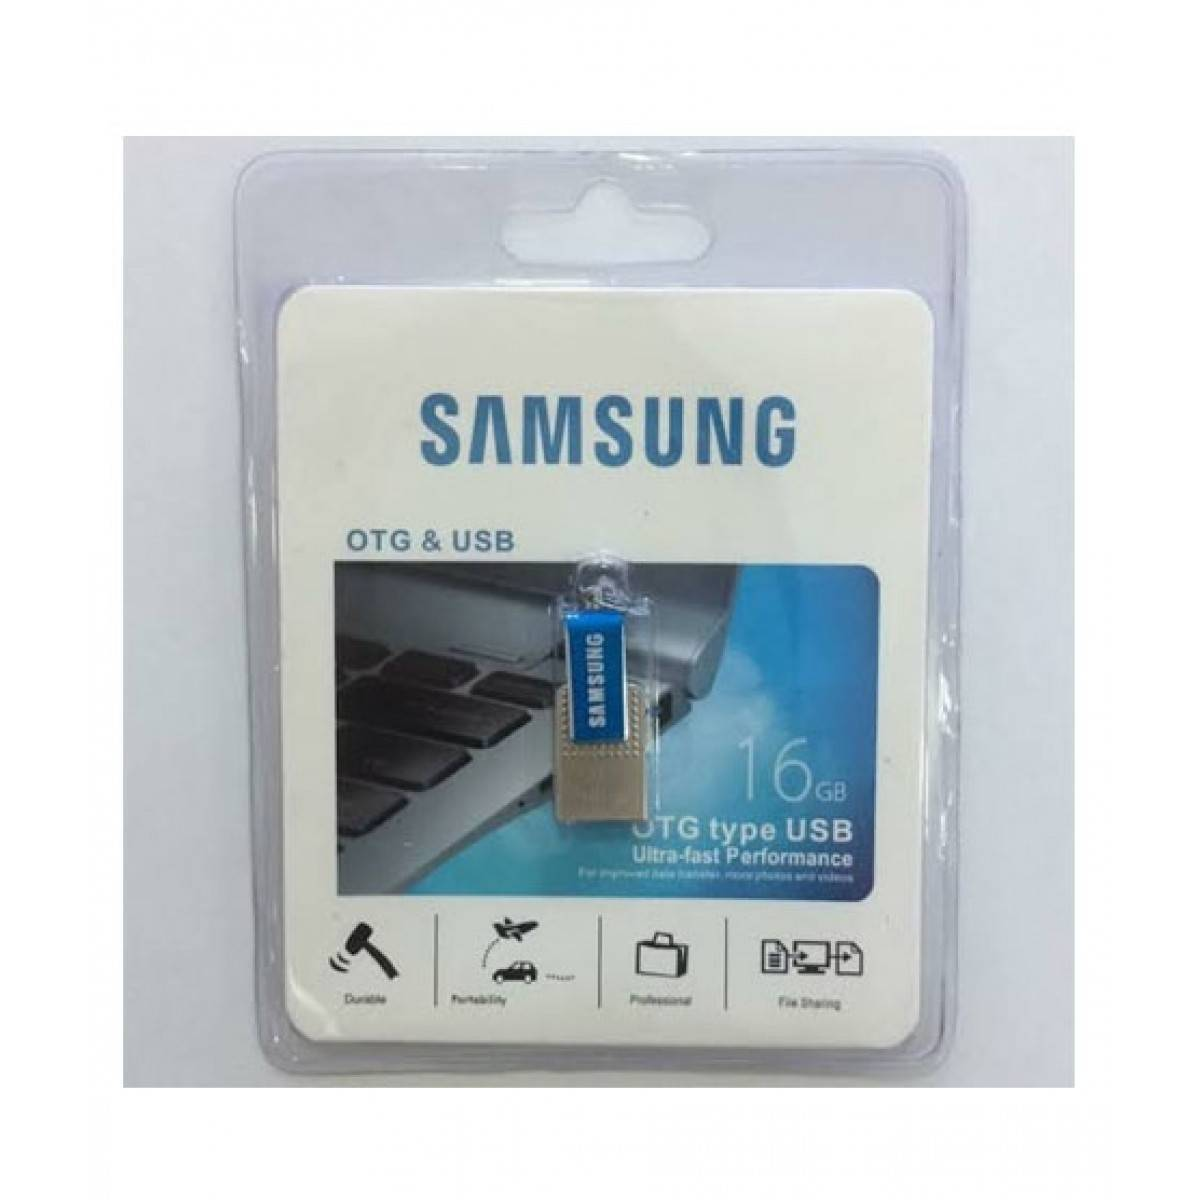 Samsung USB 16GB Pen Drive With OTG Supported